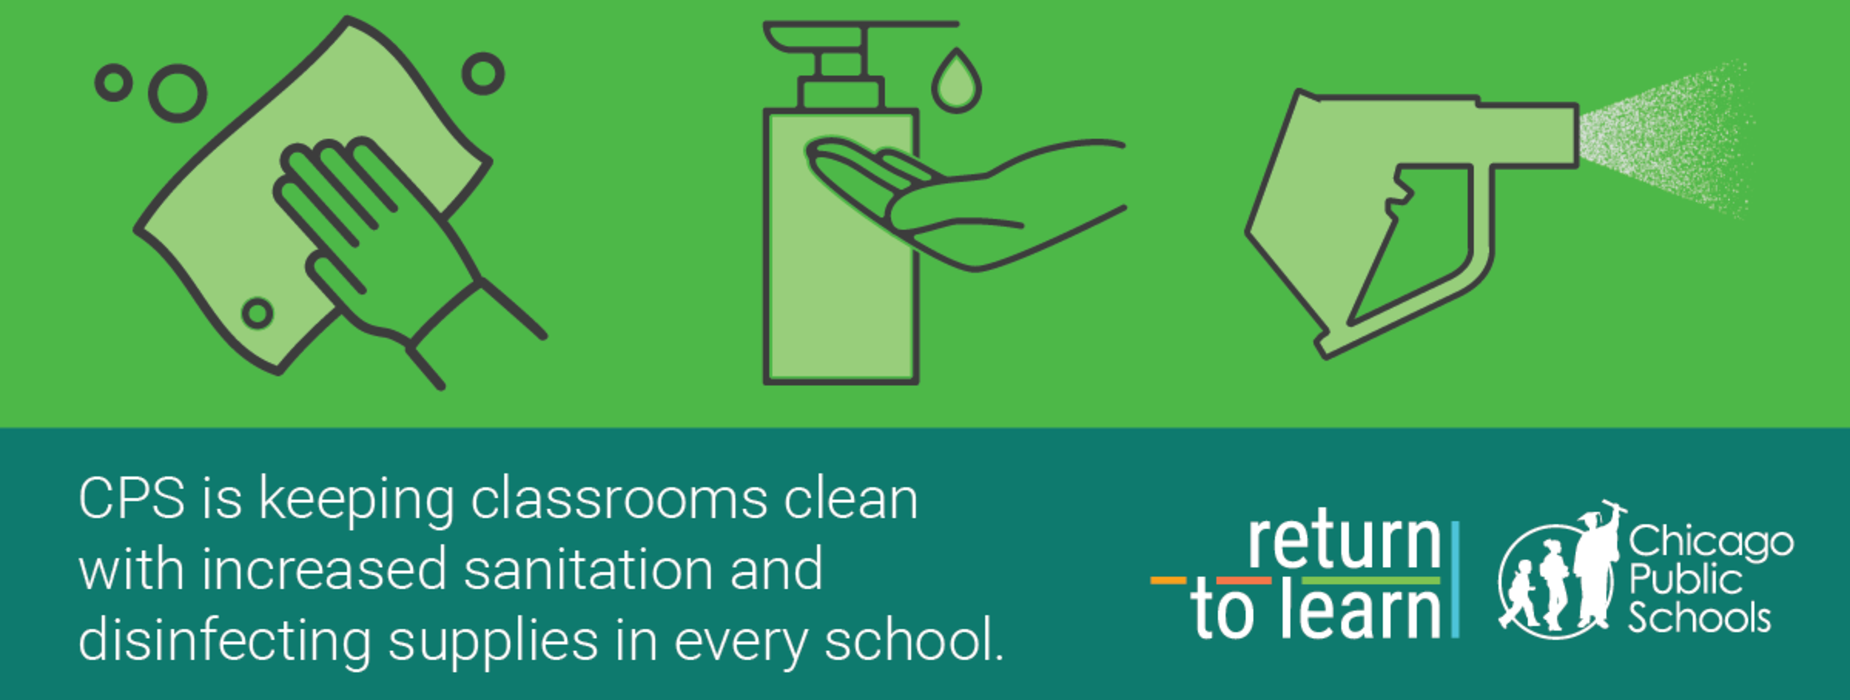 Keeping classrooms clean